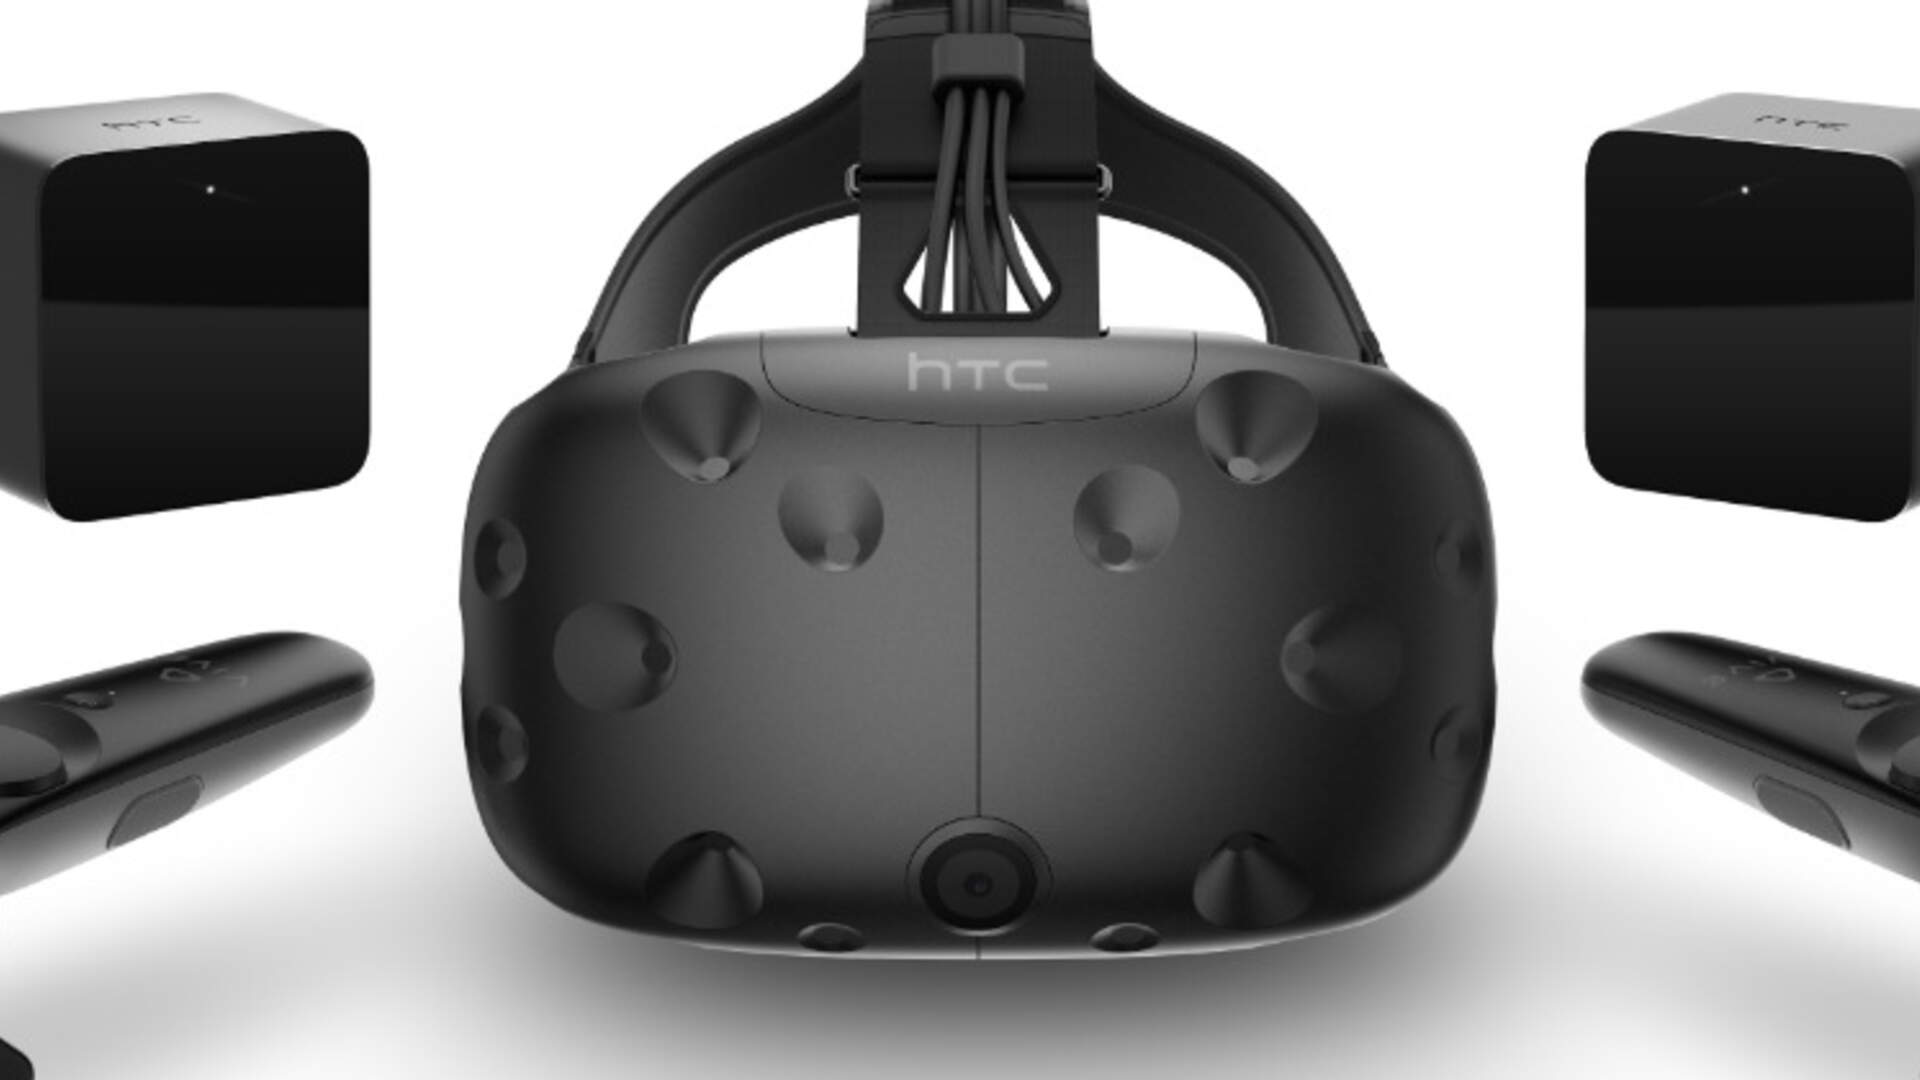 VR Gaming Gets a Big Win With HTC Vive Support for Mac Desktops